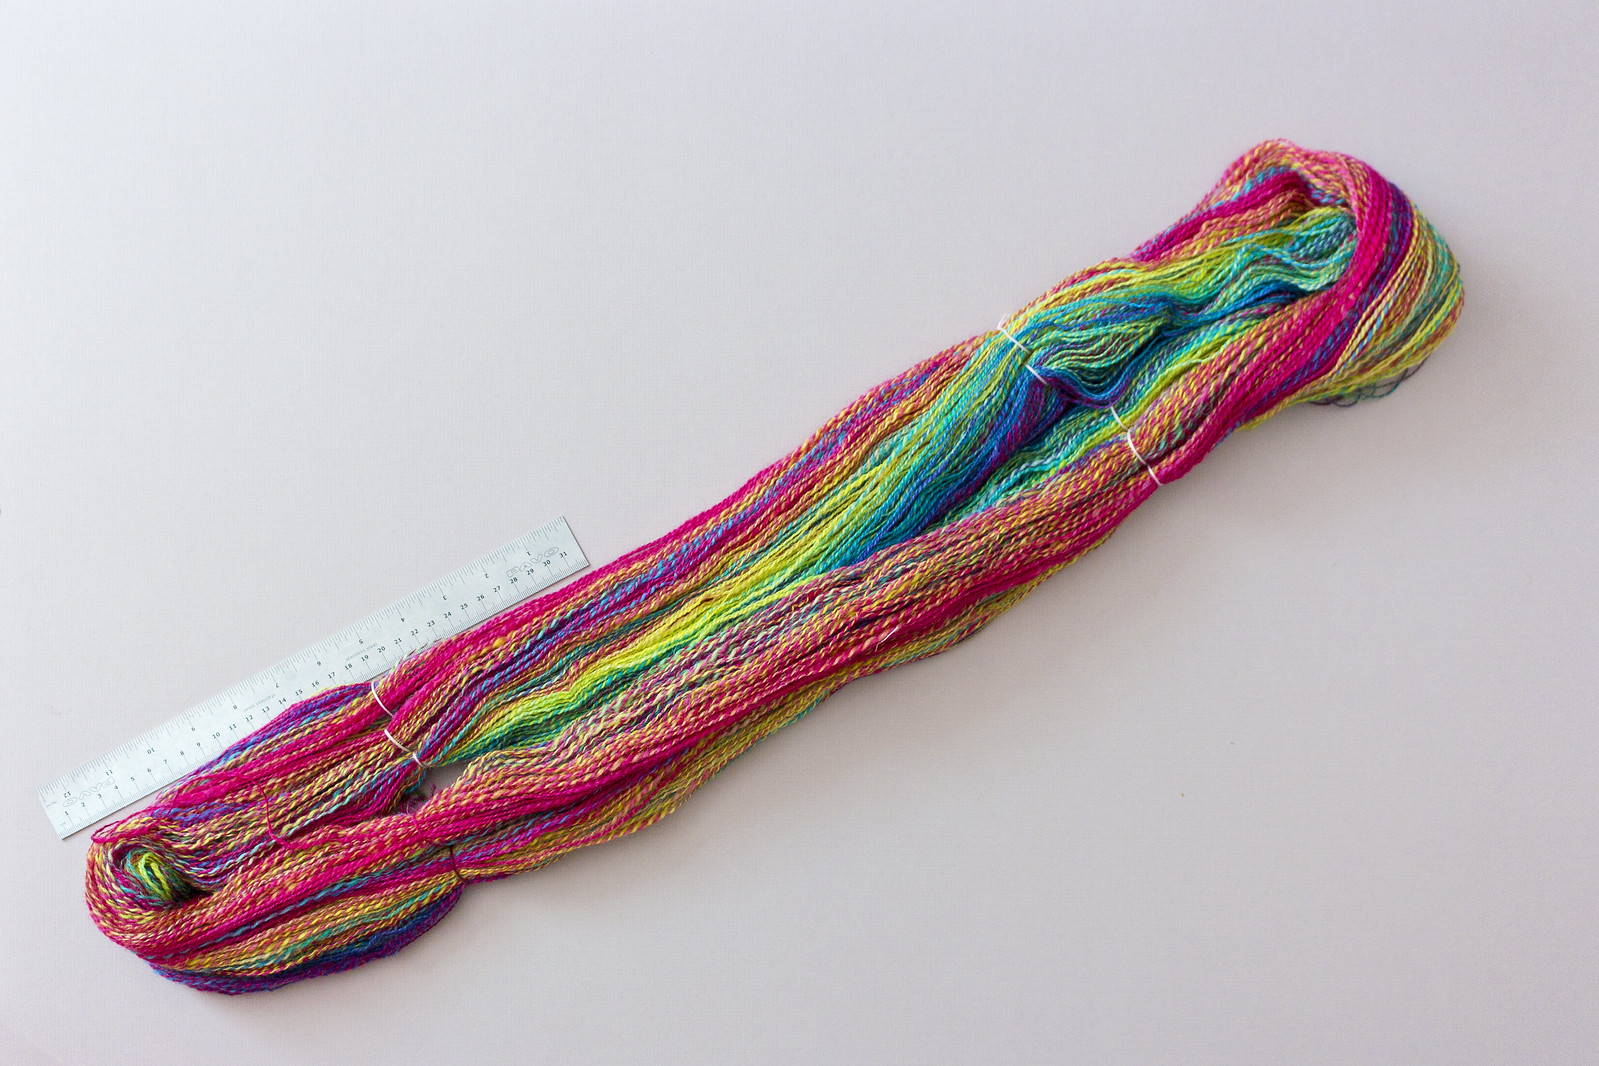 Skein of yarn made of very bright colours